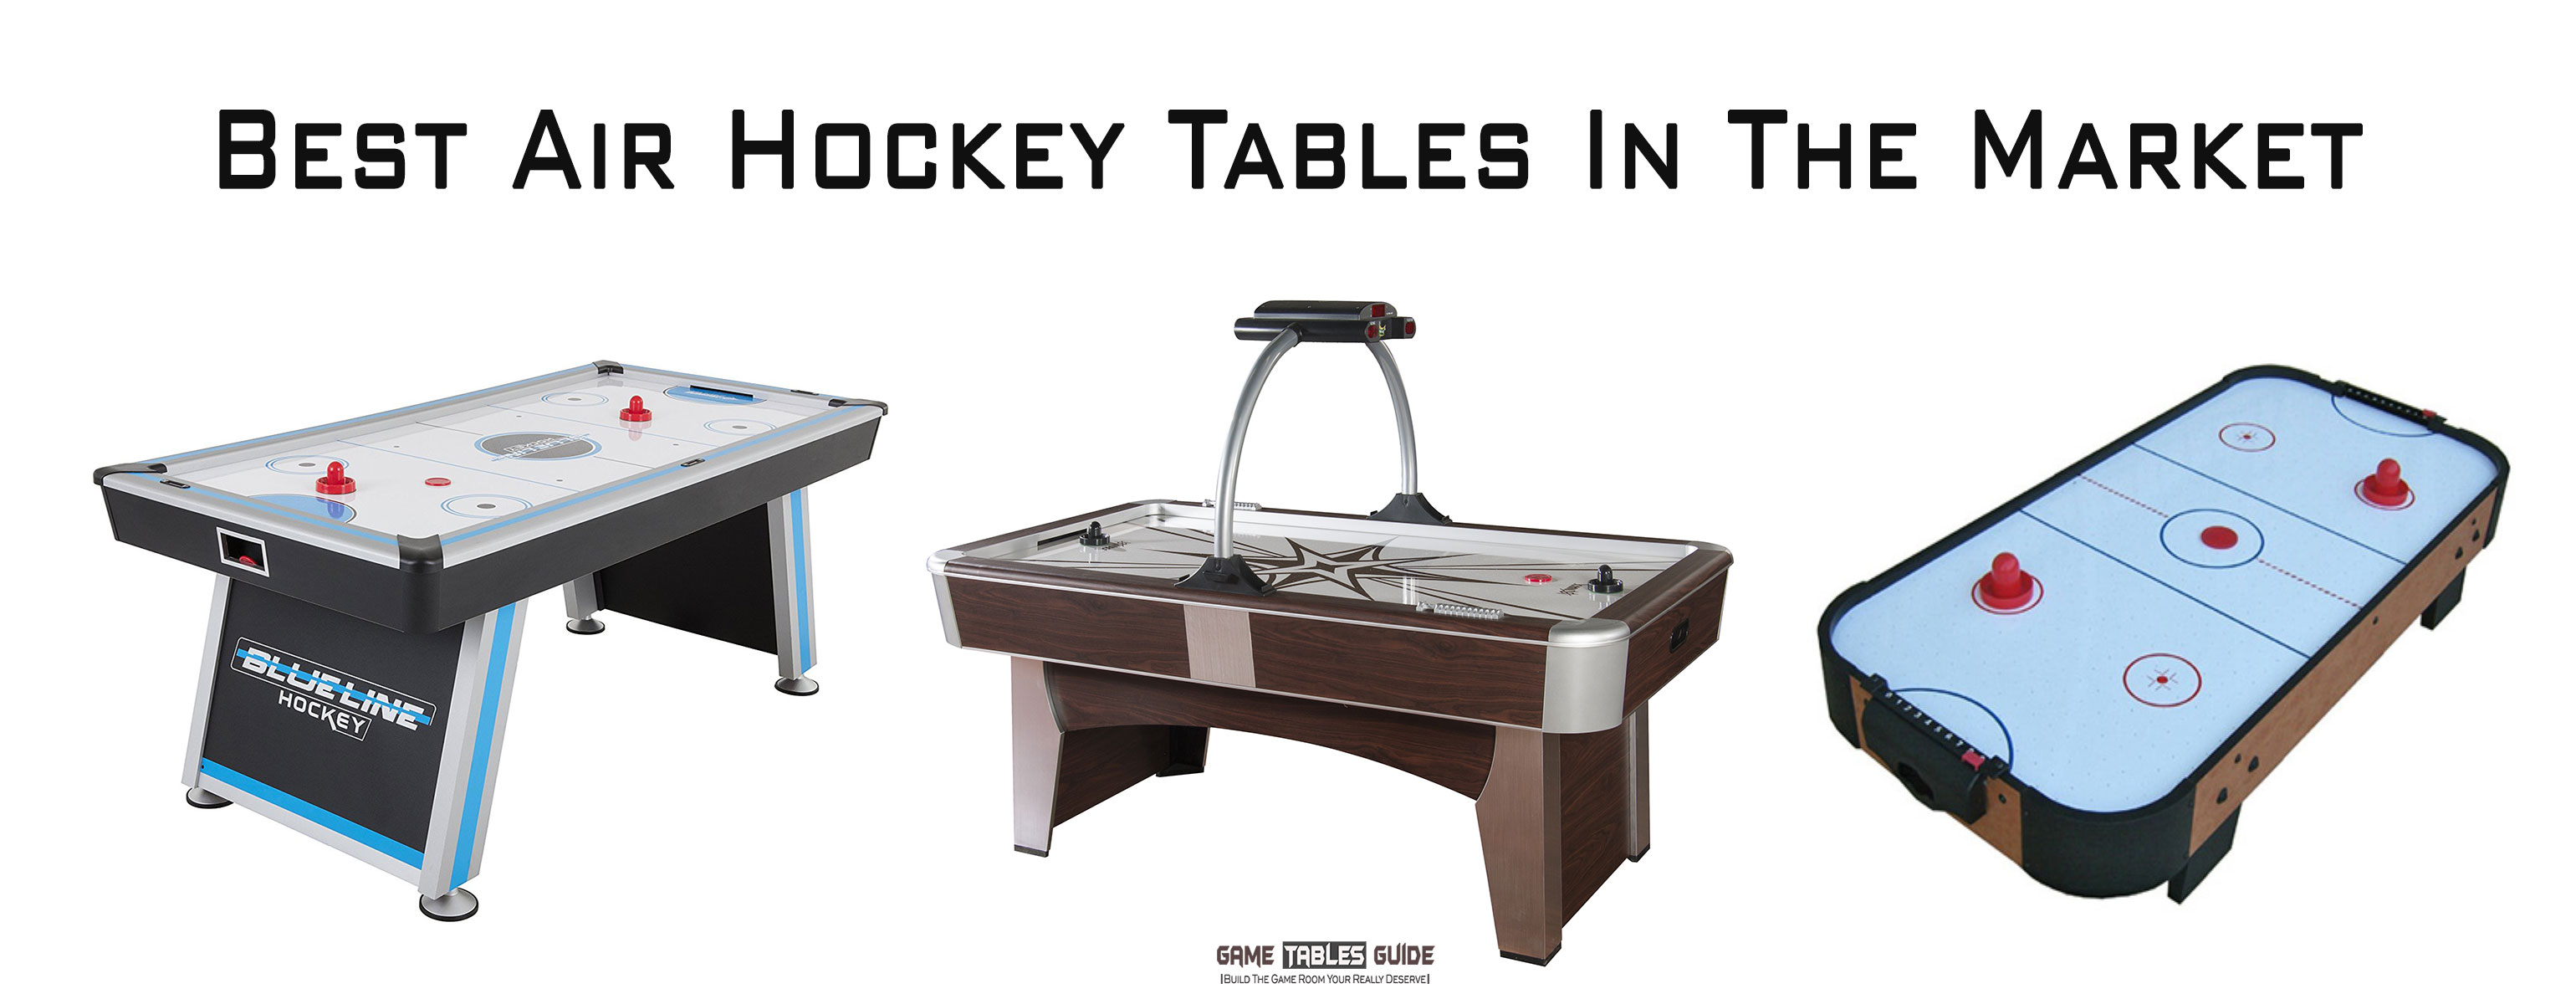 Finding Best Air Hockey Table Guide